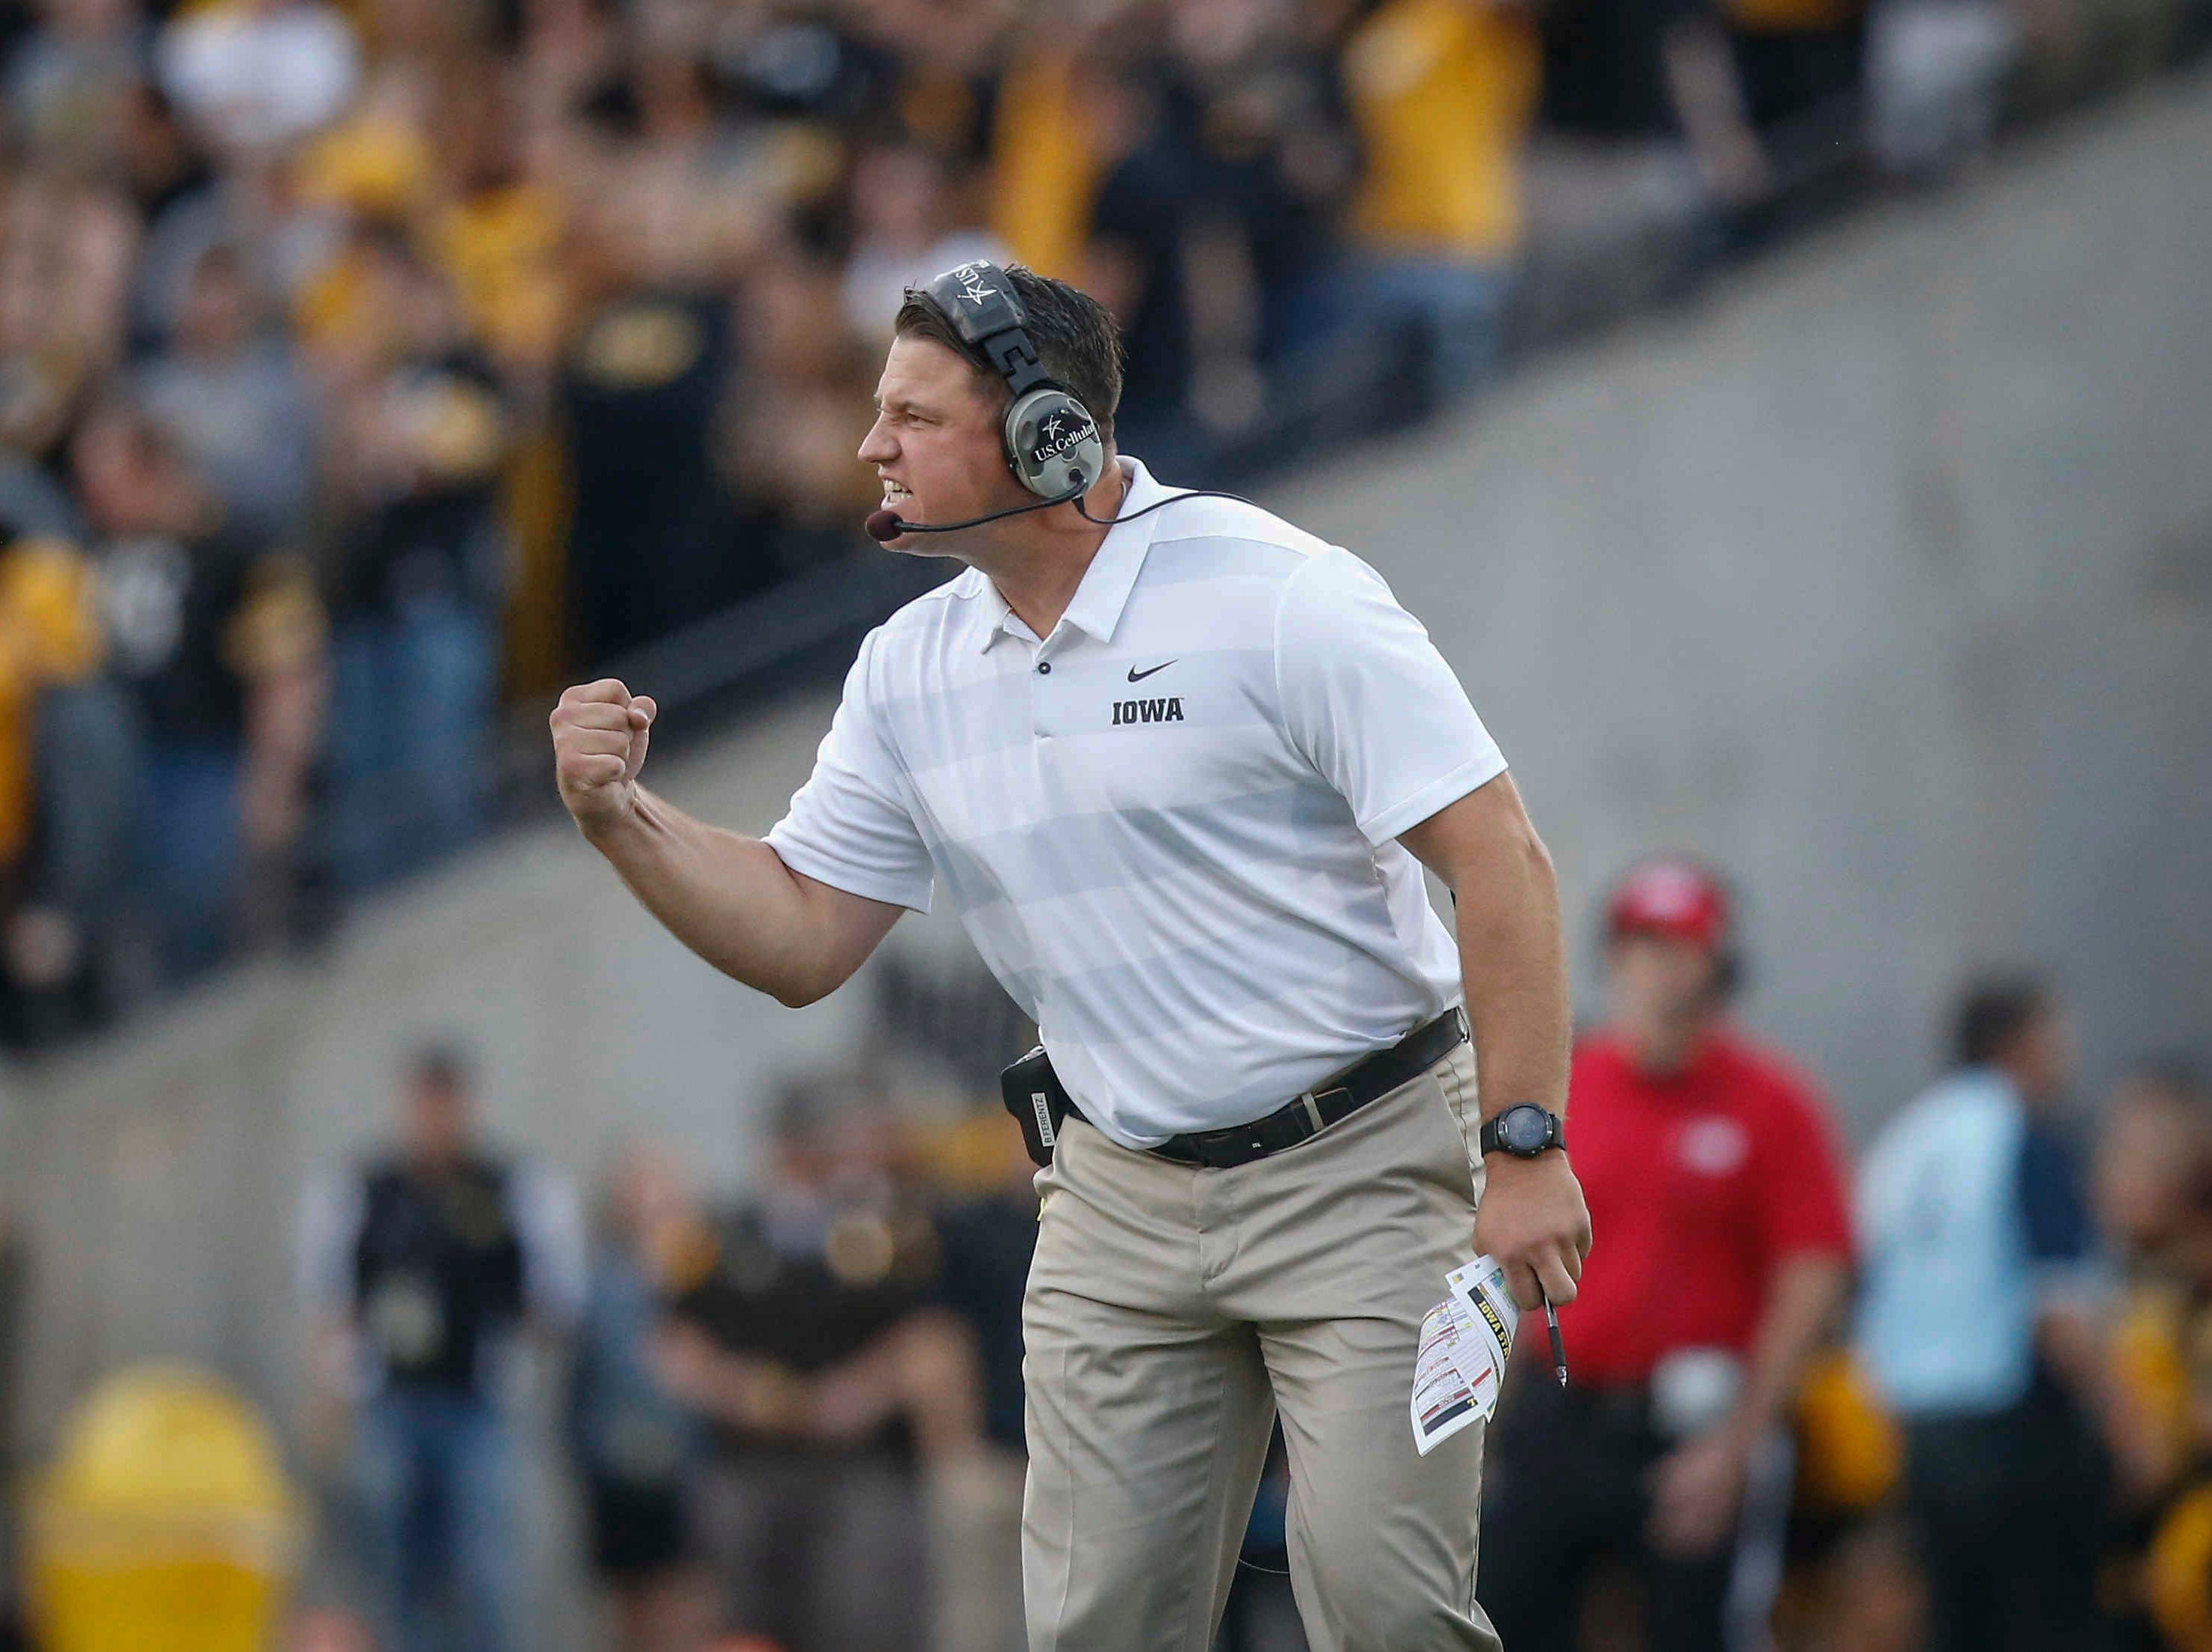 Iowa offensive coordinator Brian Ferentz pumps his fist as the Hawkeyes drive for a first down late against Iowa State on Saturday, Sept. 8, 2018, at Kinnick Stadium in Iowa City.